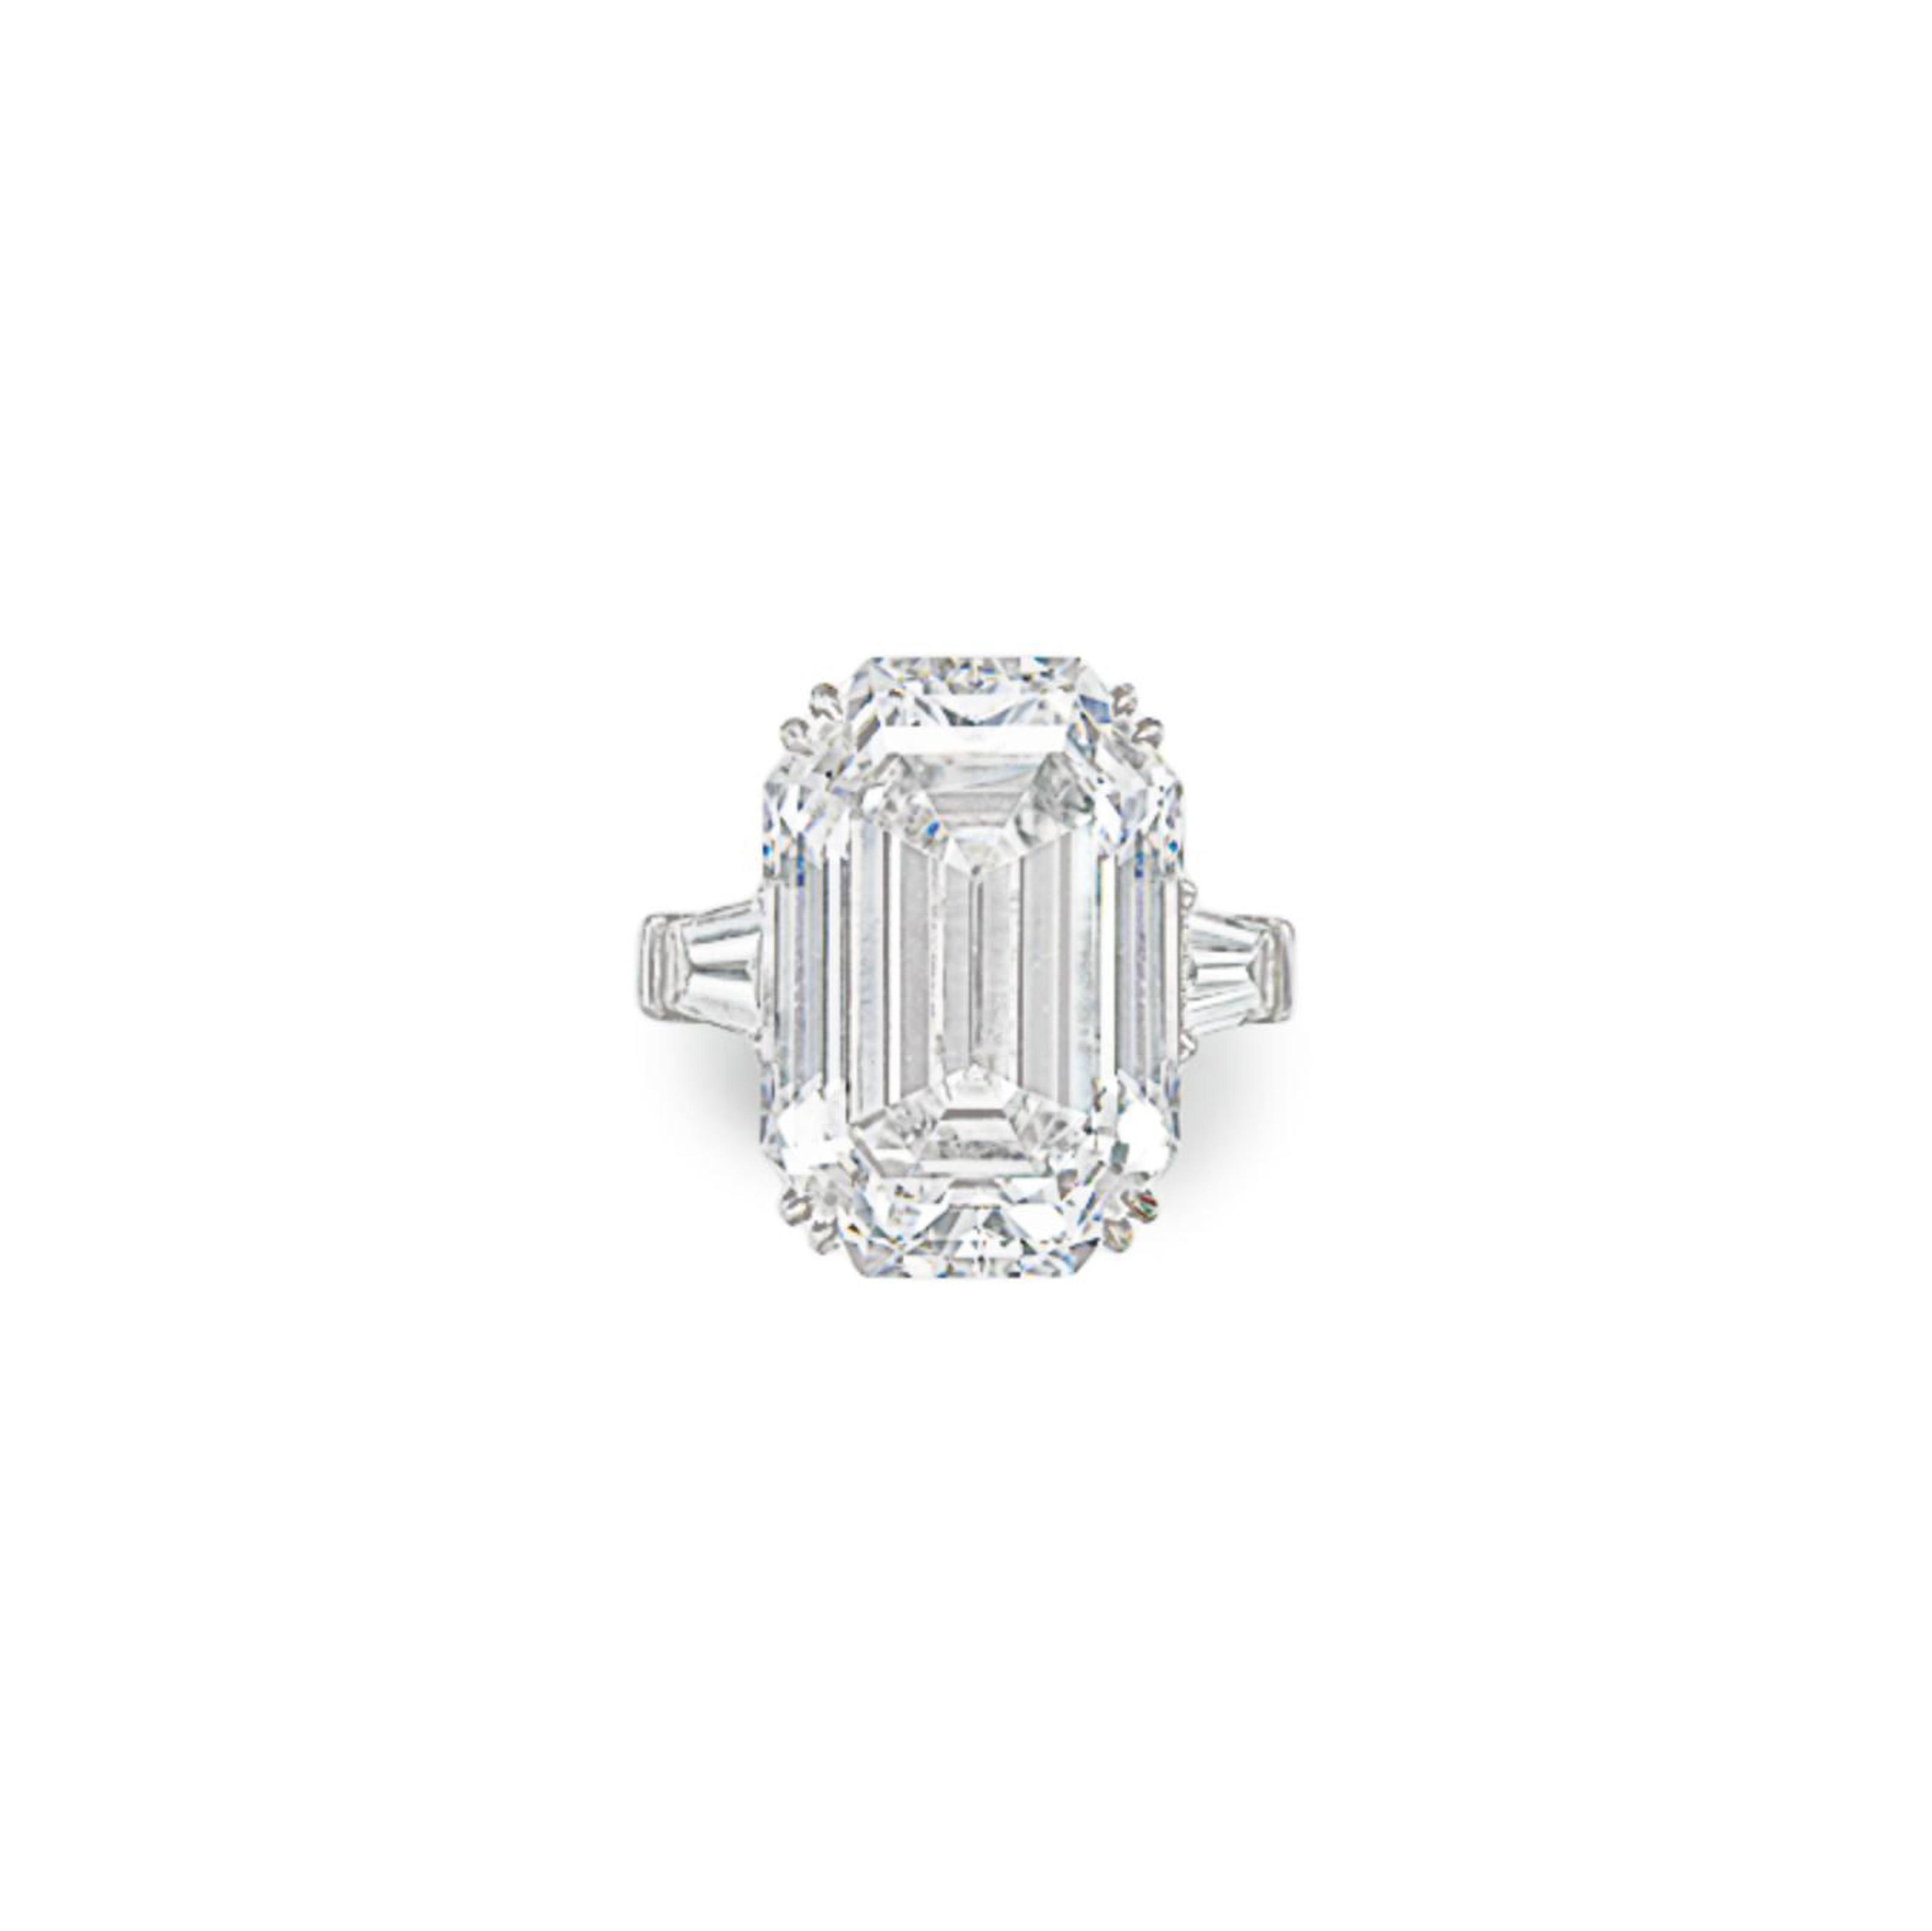 AN IMPORTANT DIAMOND RING, BY GRAFF